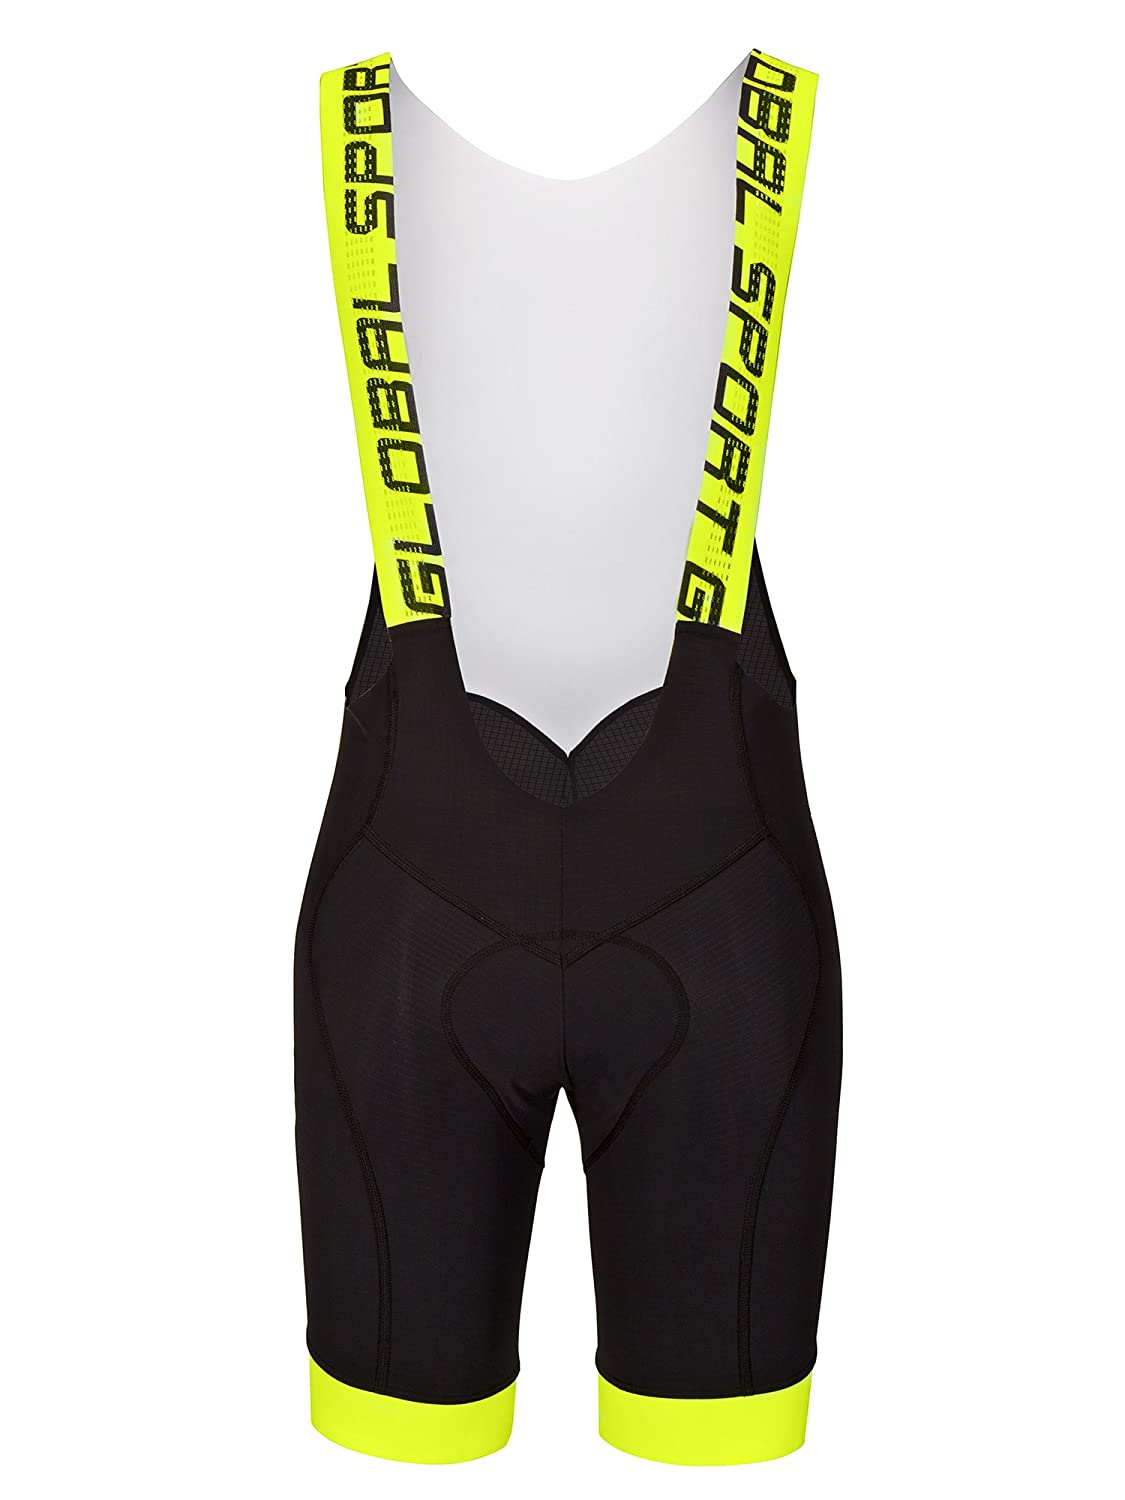 GSG Marmolada Anatomic Fit Lycra Mens Cycling Shorts Yellow GSG SRL